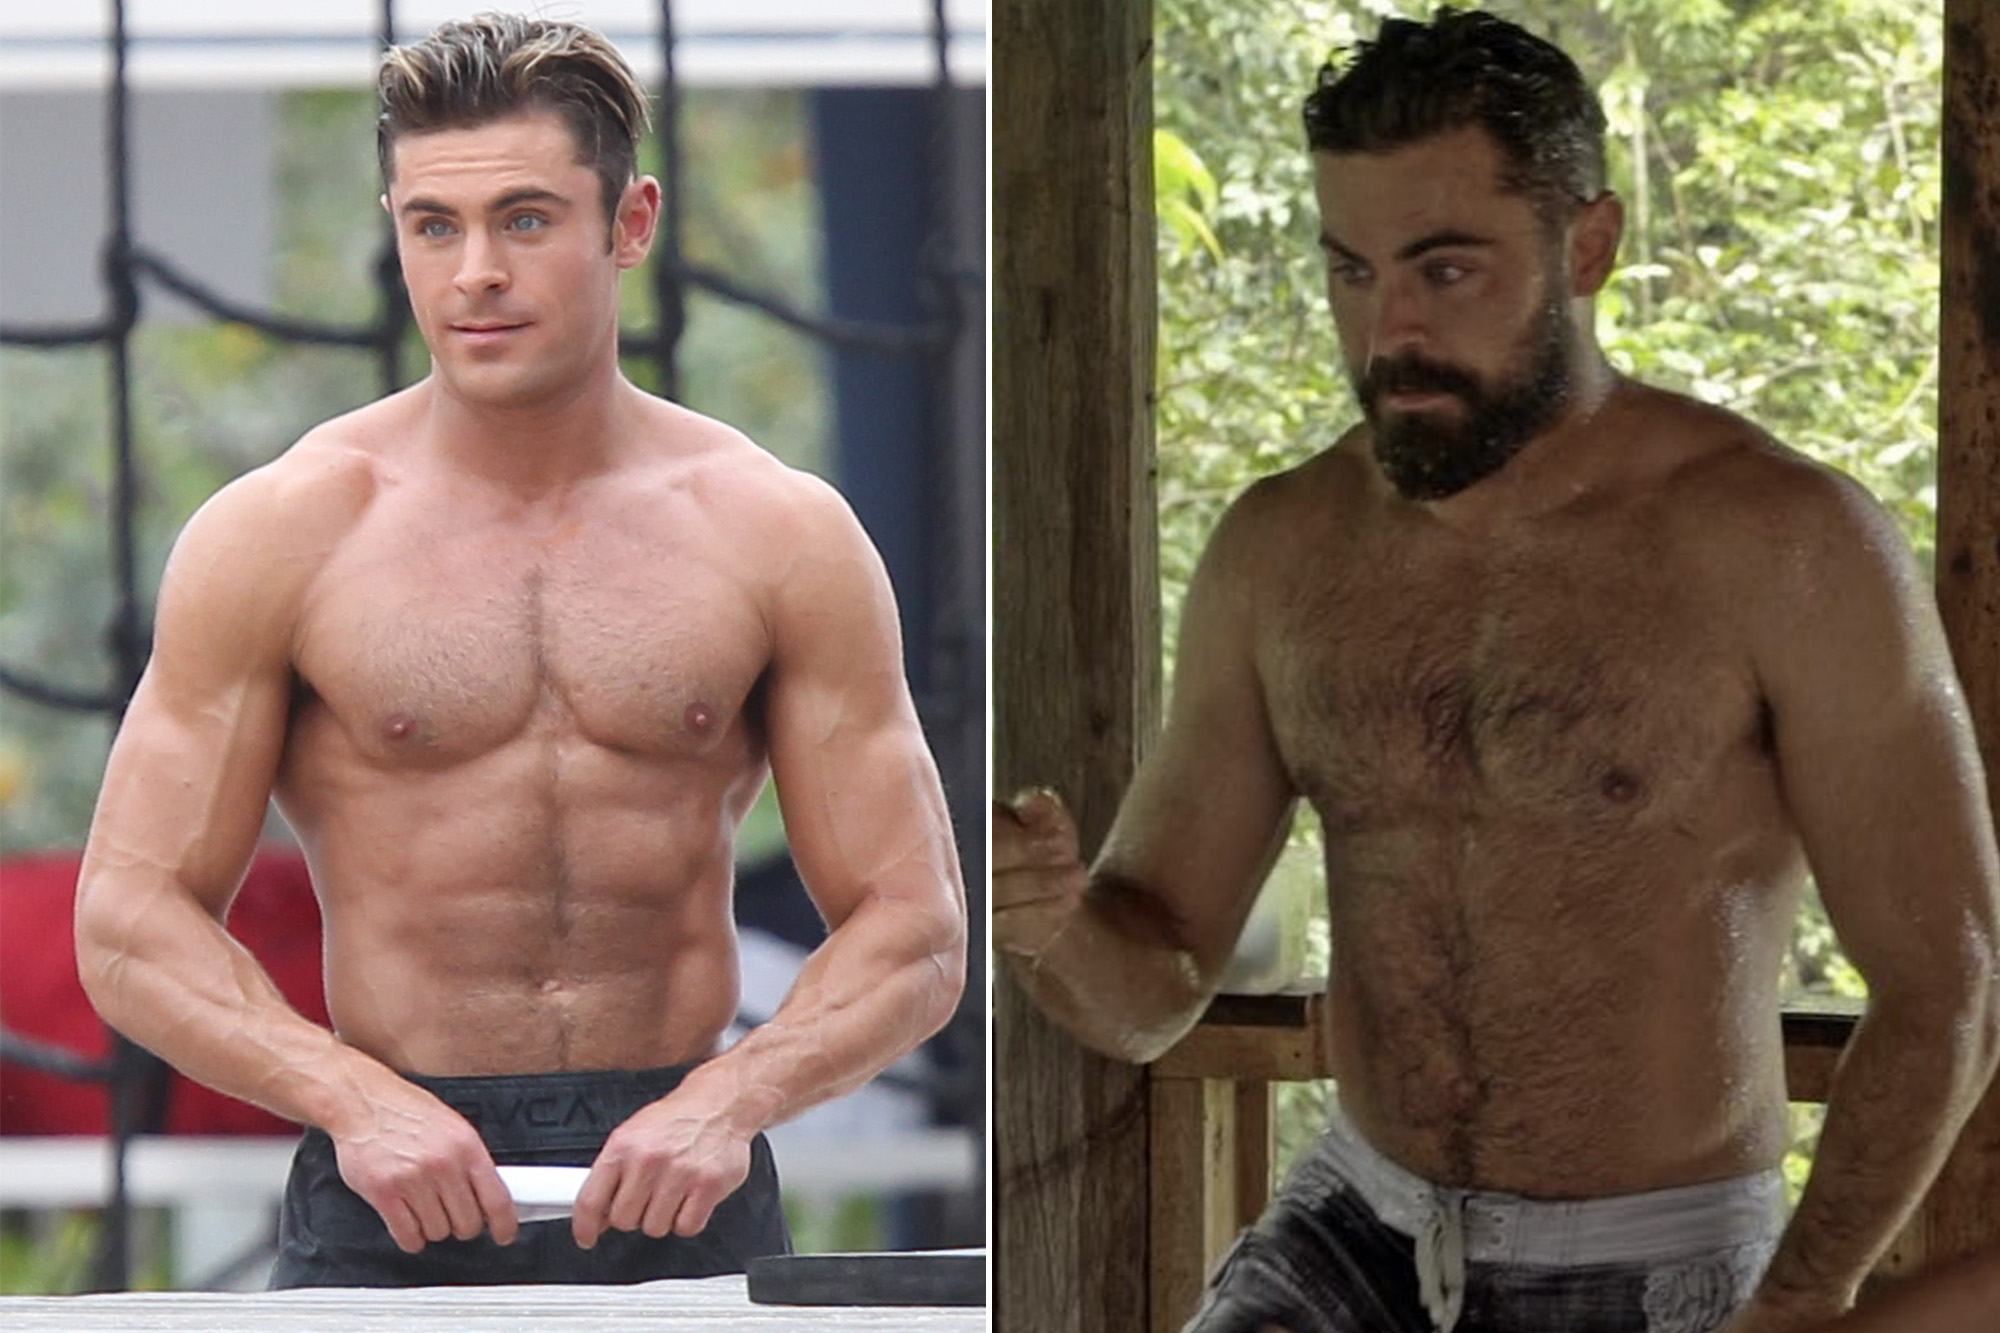 See Zac Efron S Dad Bod Transformation On Netflix Show Down To Earth